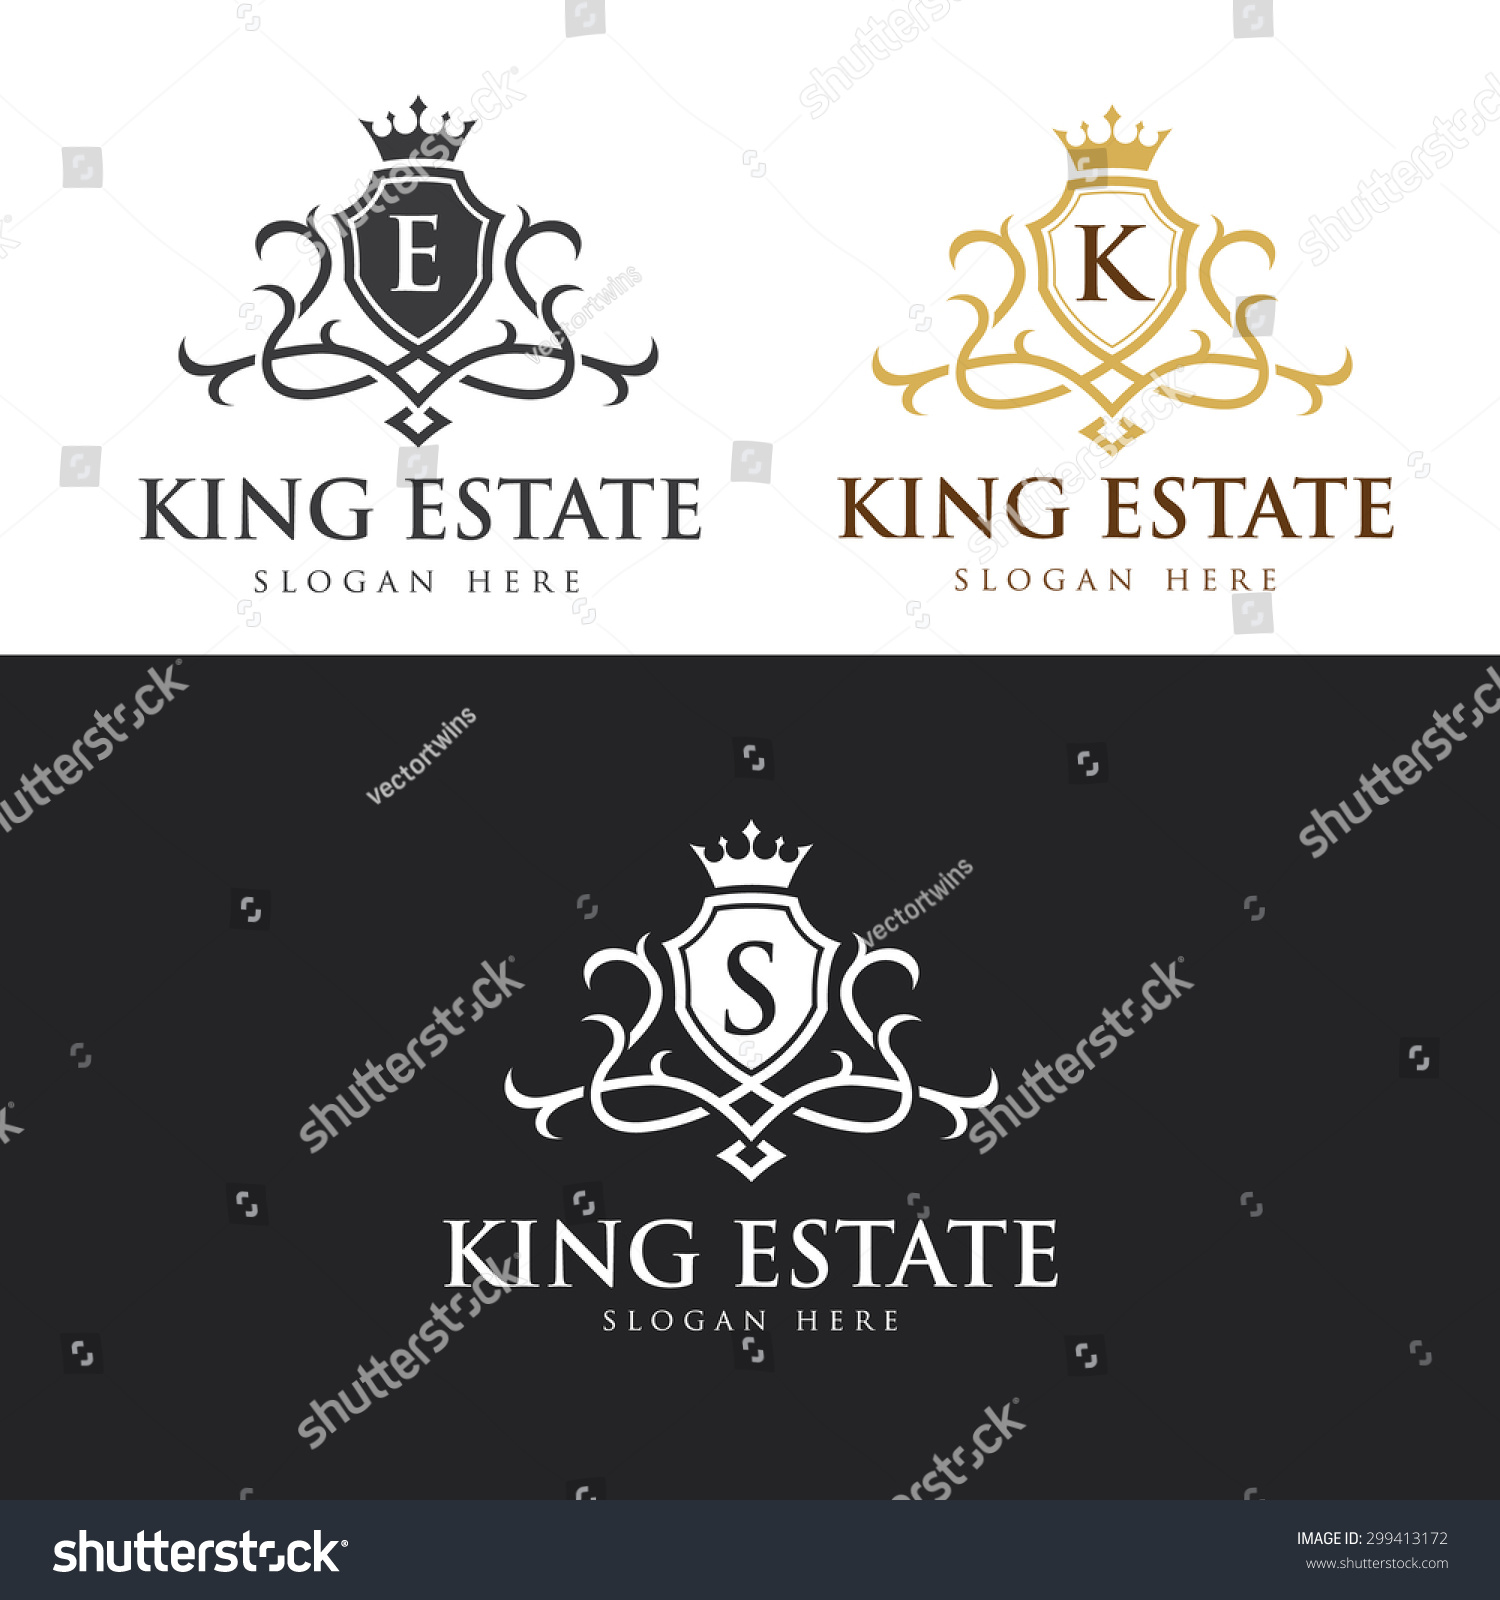 statewide+real+estate